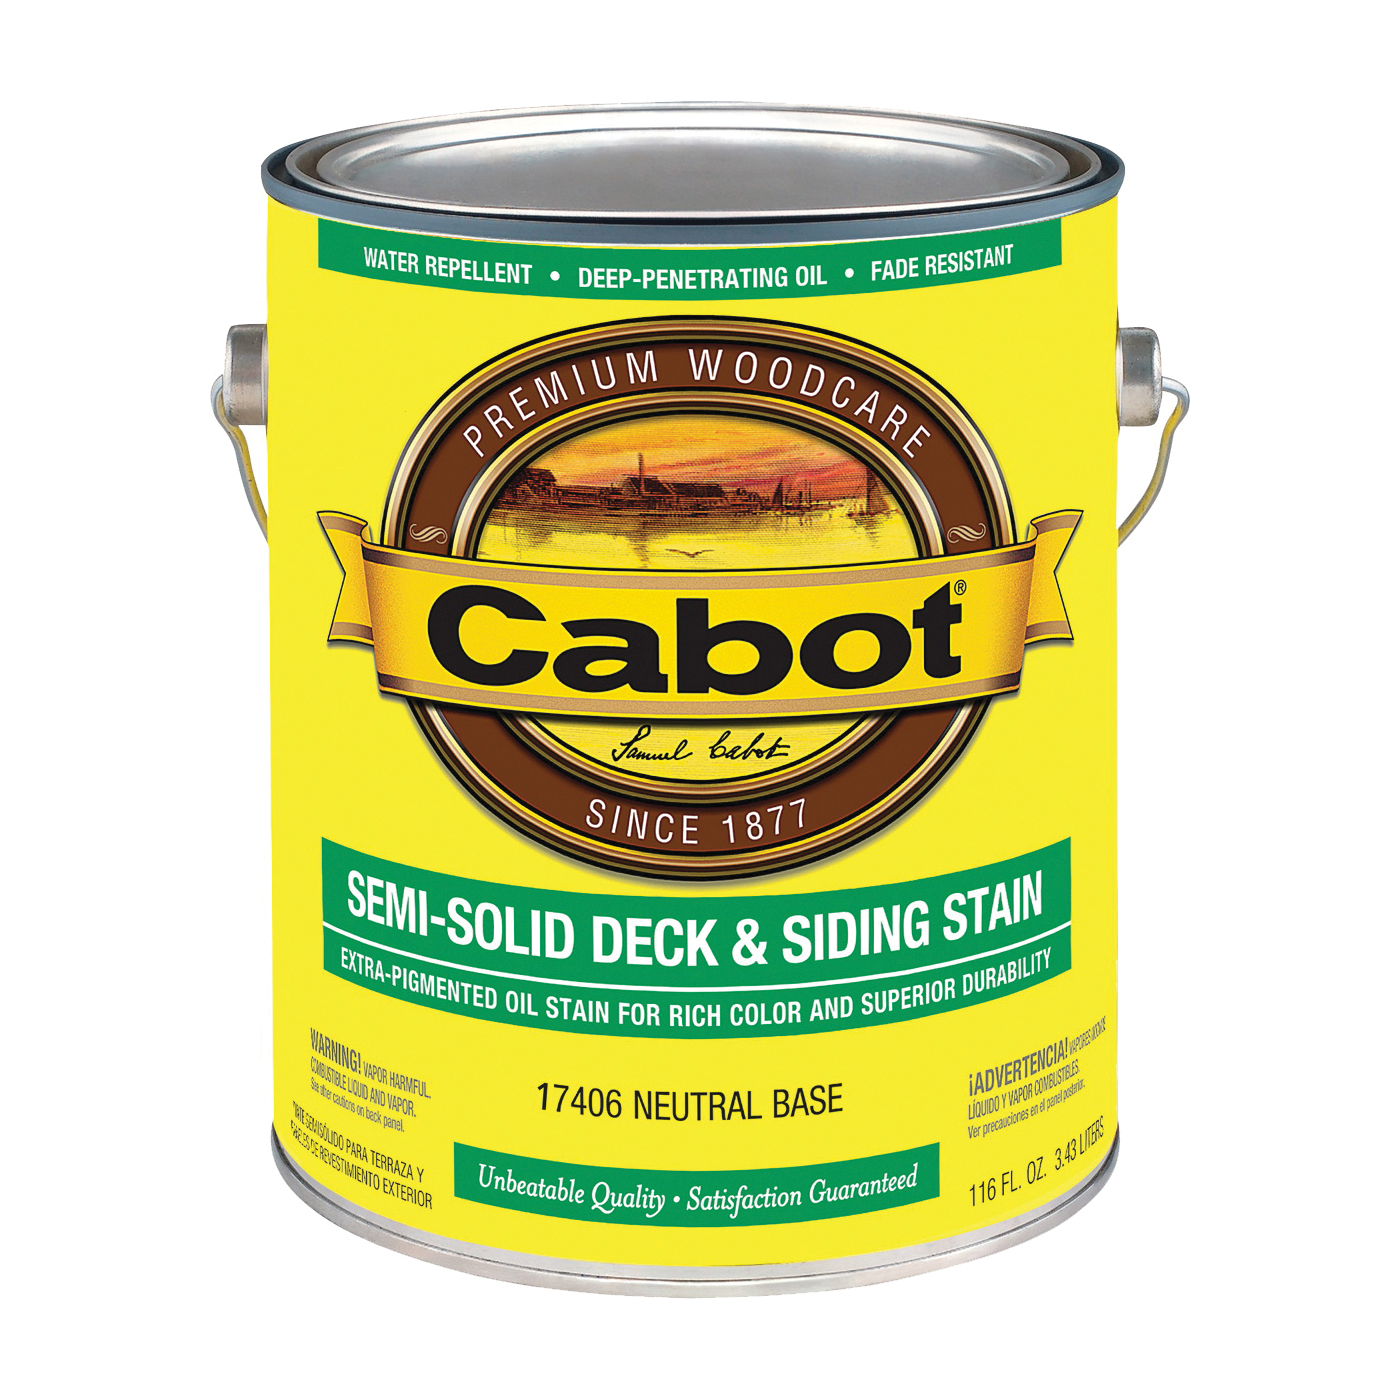 Picture of Cabot 17406 Deck and Siding Stain, Neutral Base, Liquid, 1 gal